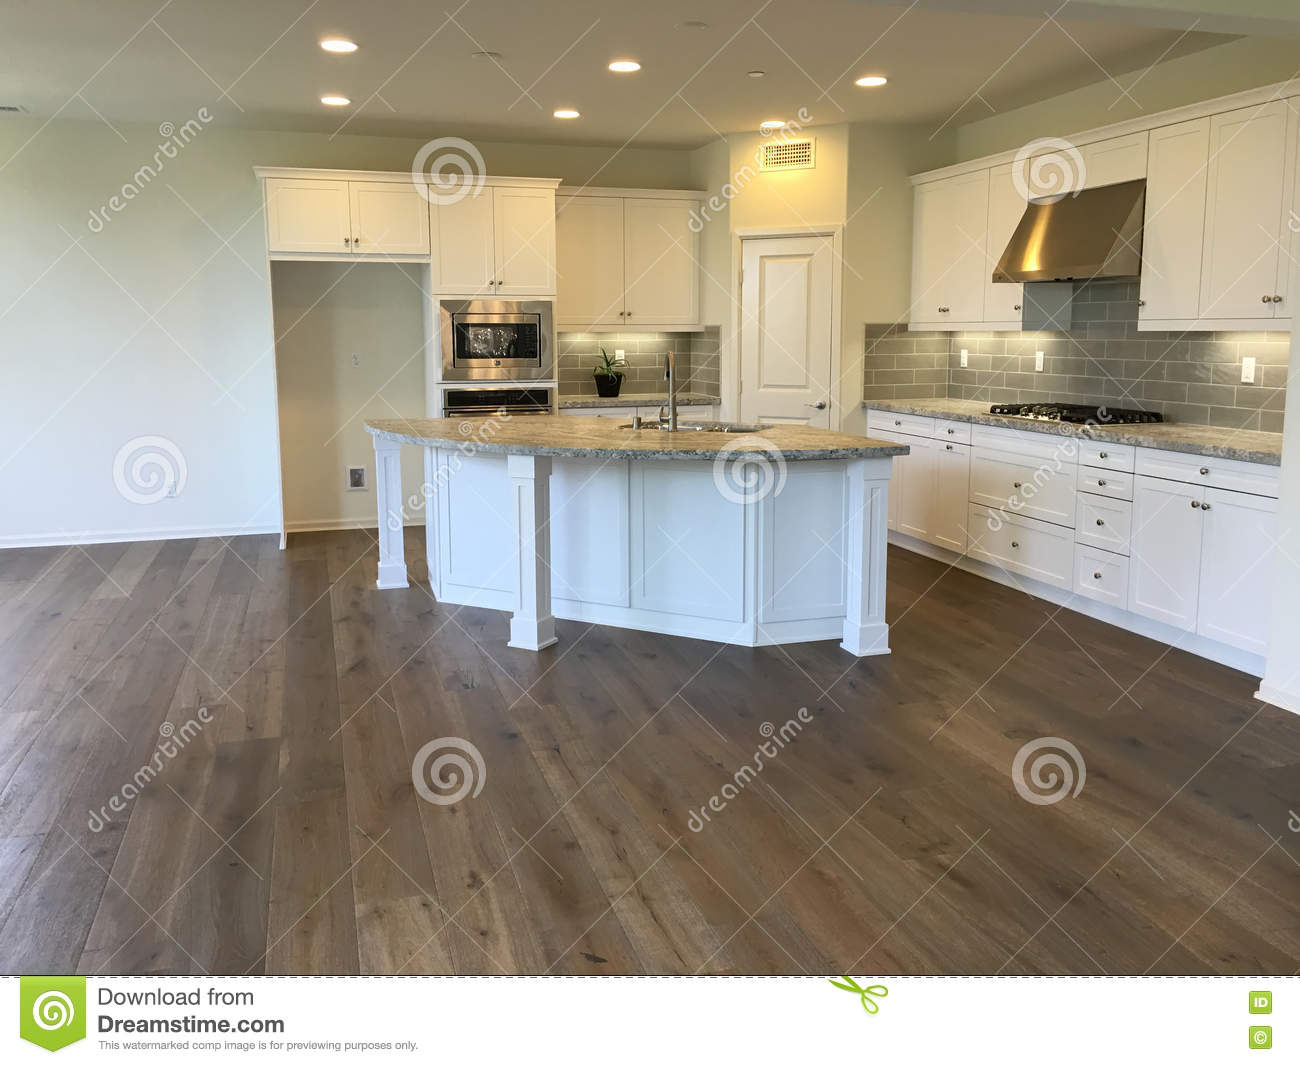 Kitchen Wood Flooring Dining Room And Kitchen Breakfast Bar With Wood Floors And Granite